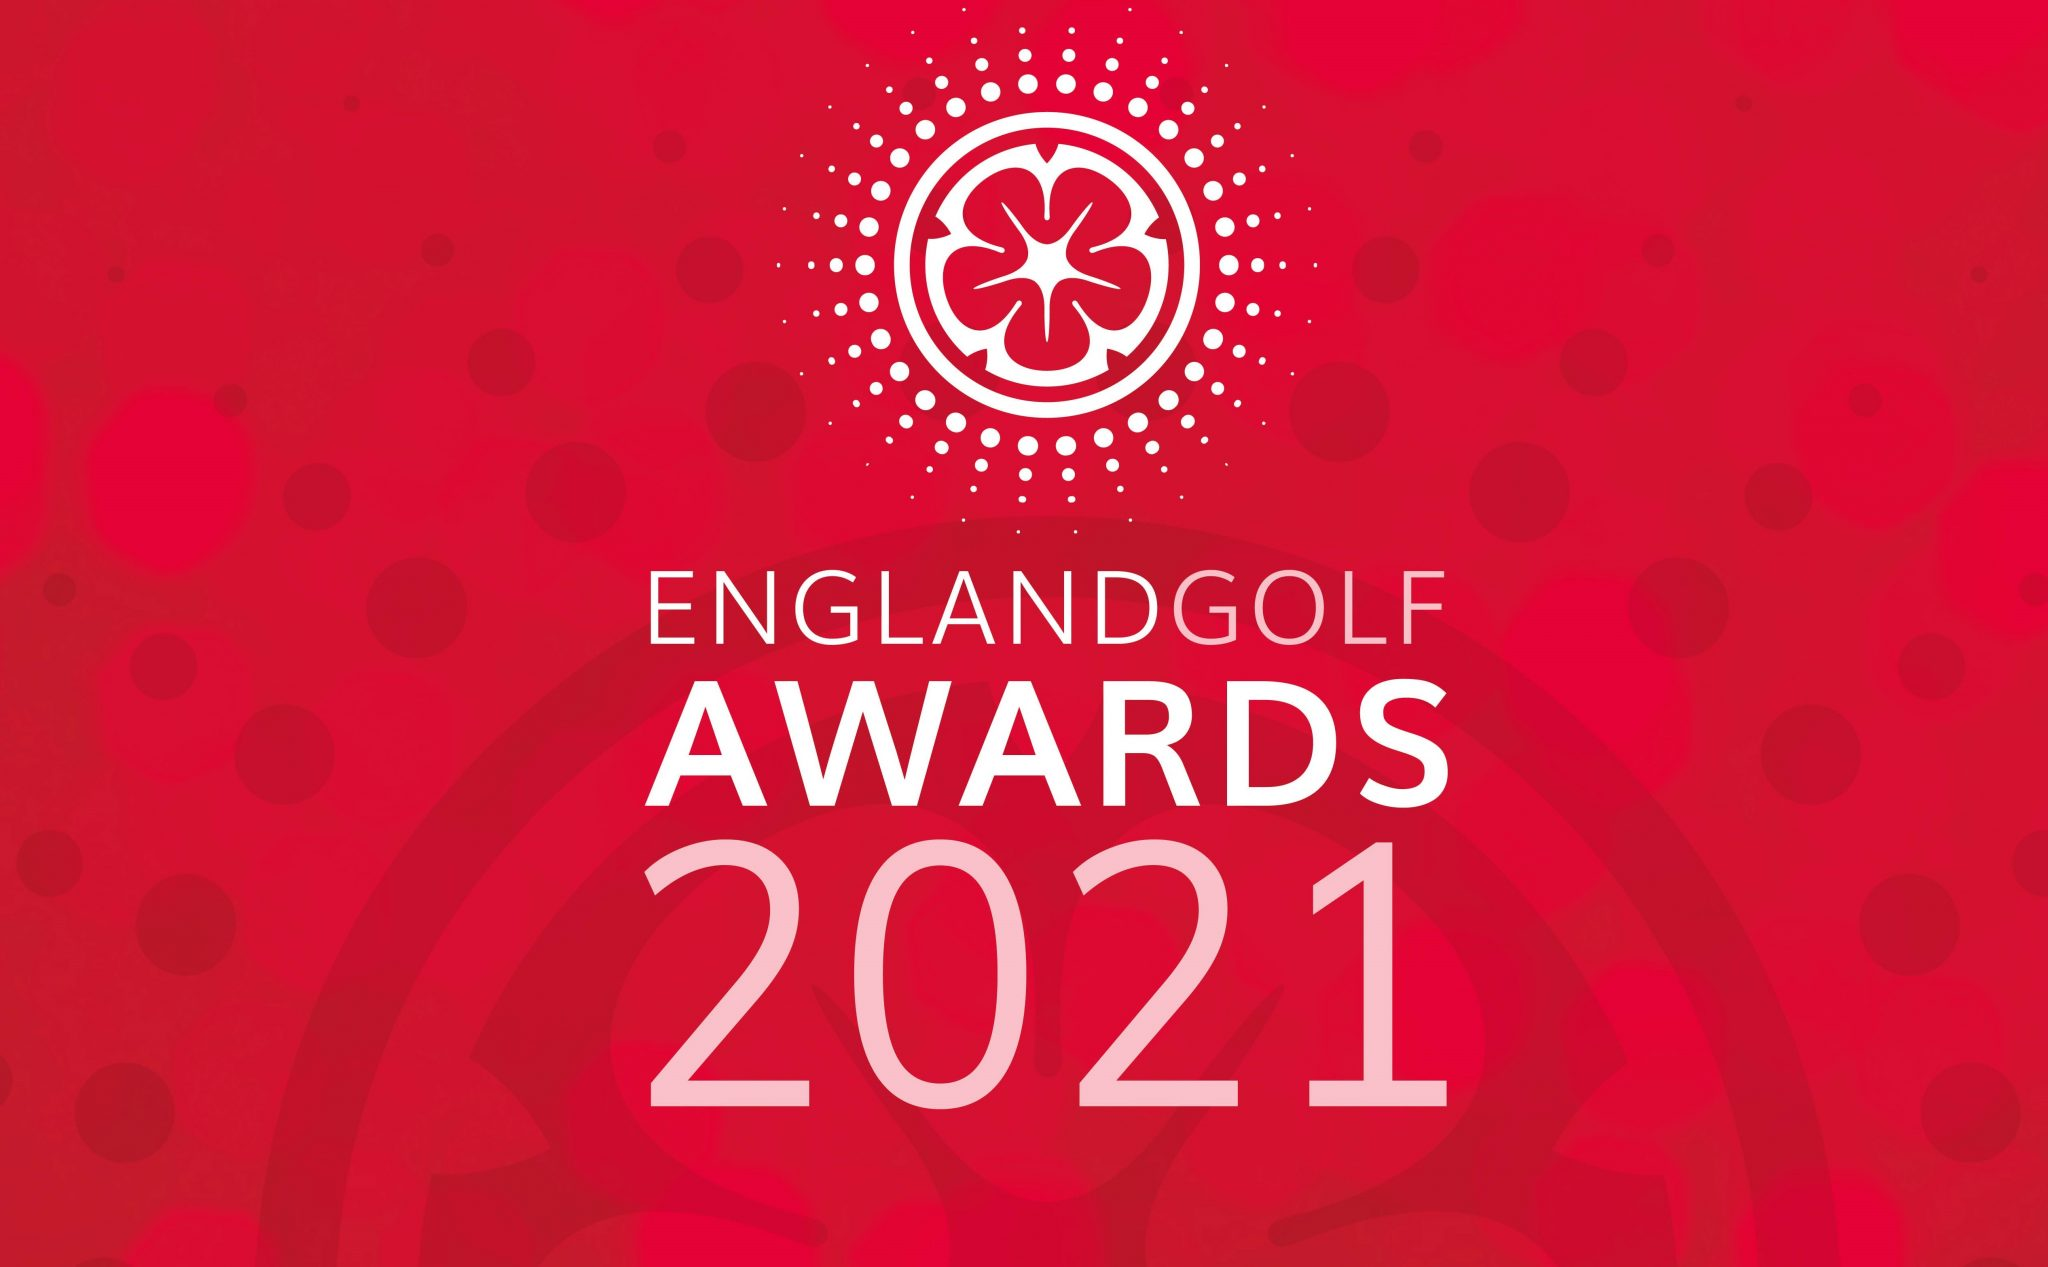 Nominees announced for England Golf Awards 2021